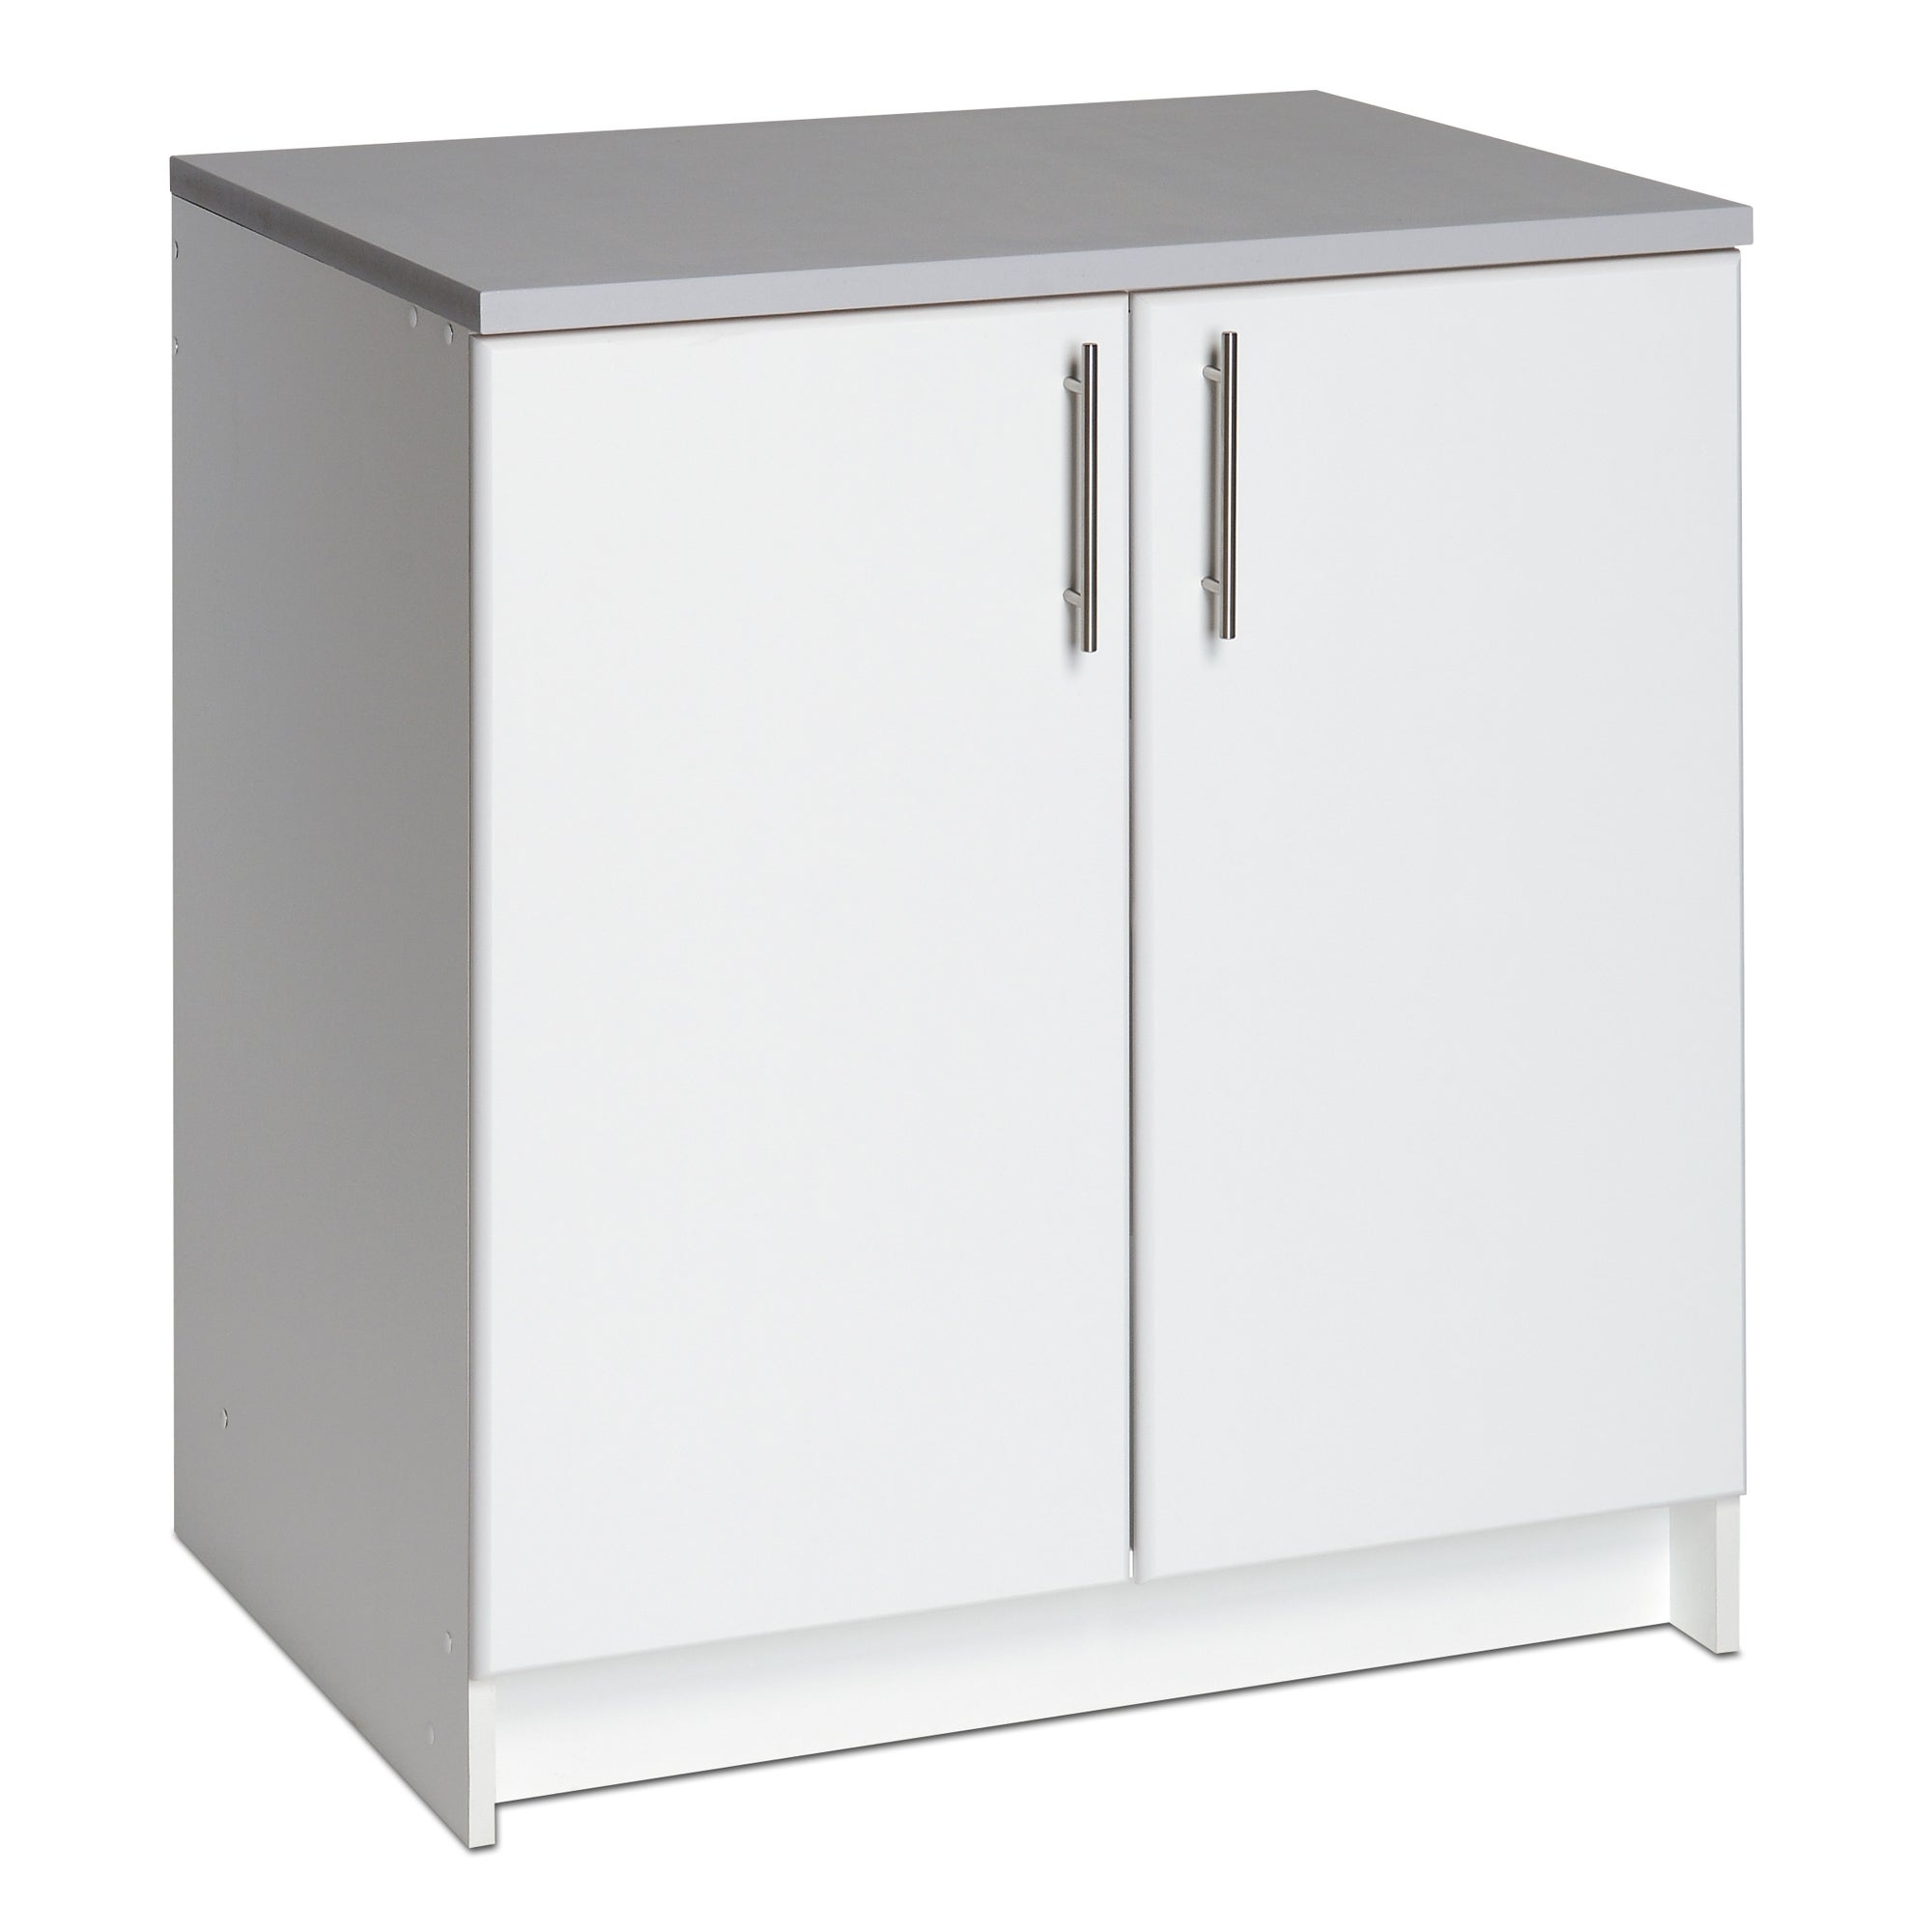 Winslow white 32 inch elite base cabinet with two doors for 10 inch kitchen cabinet